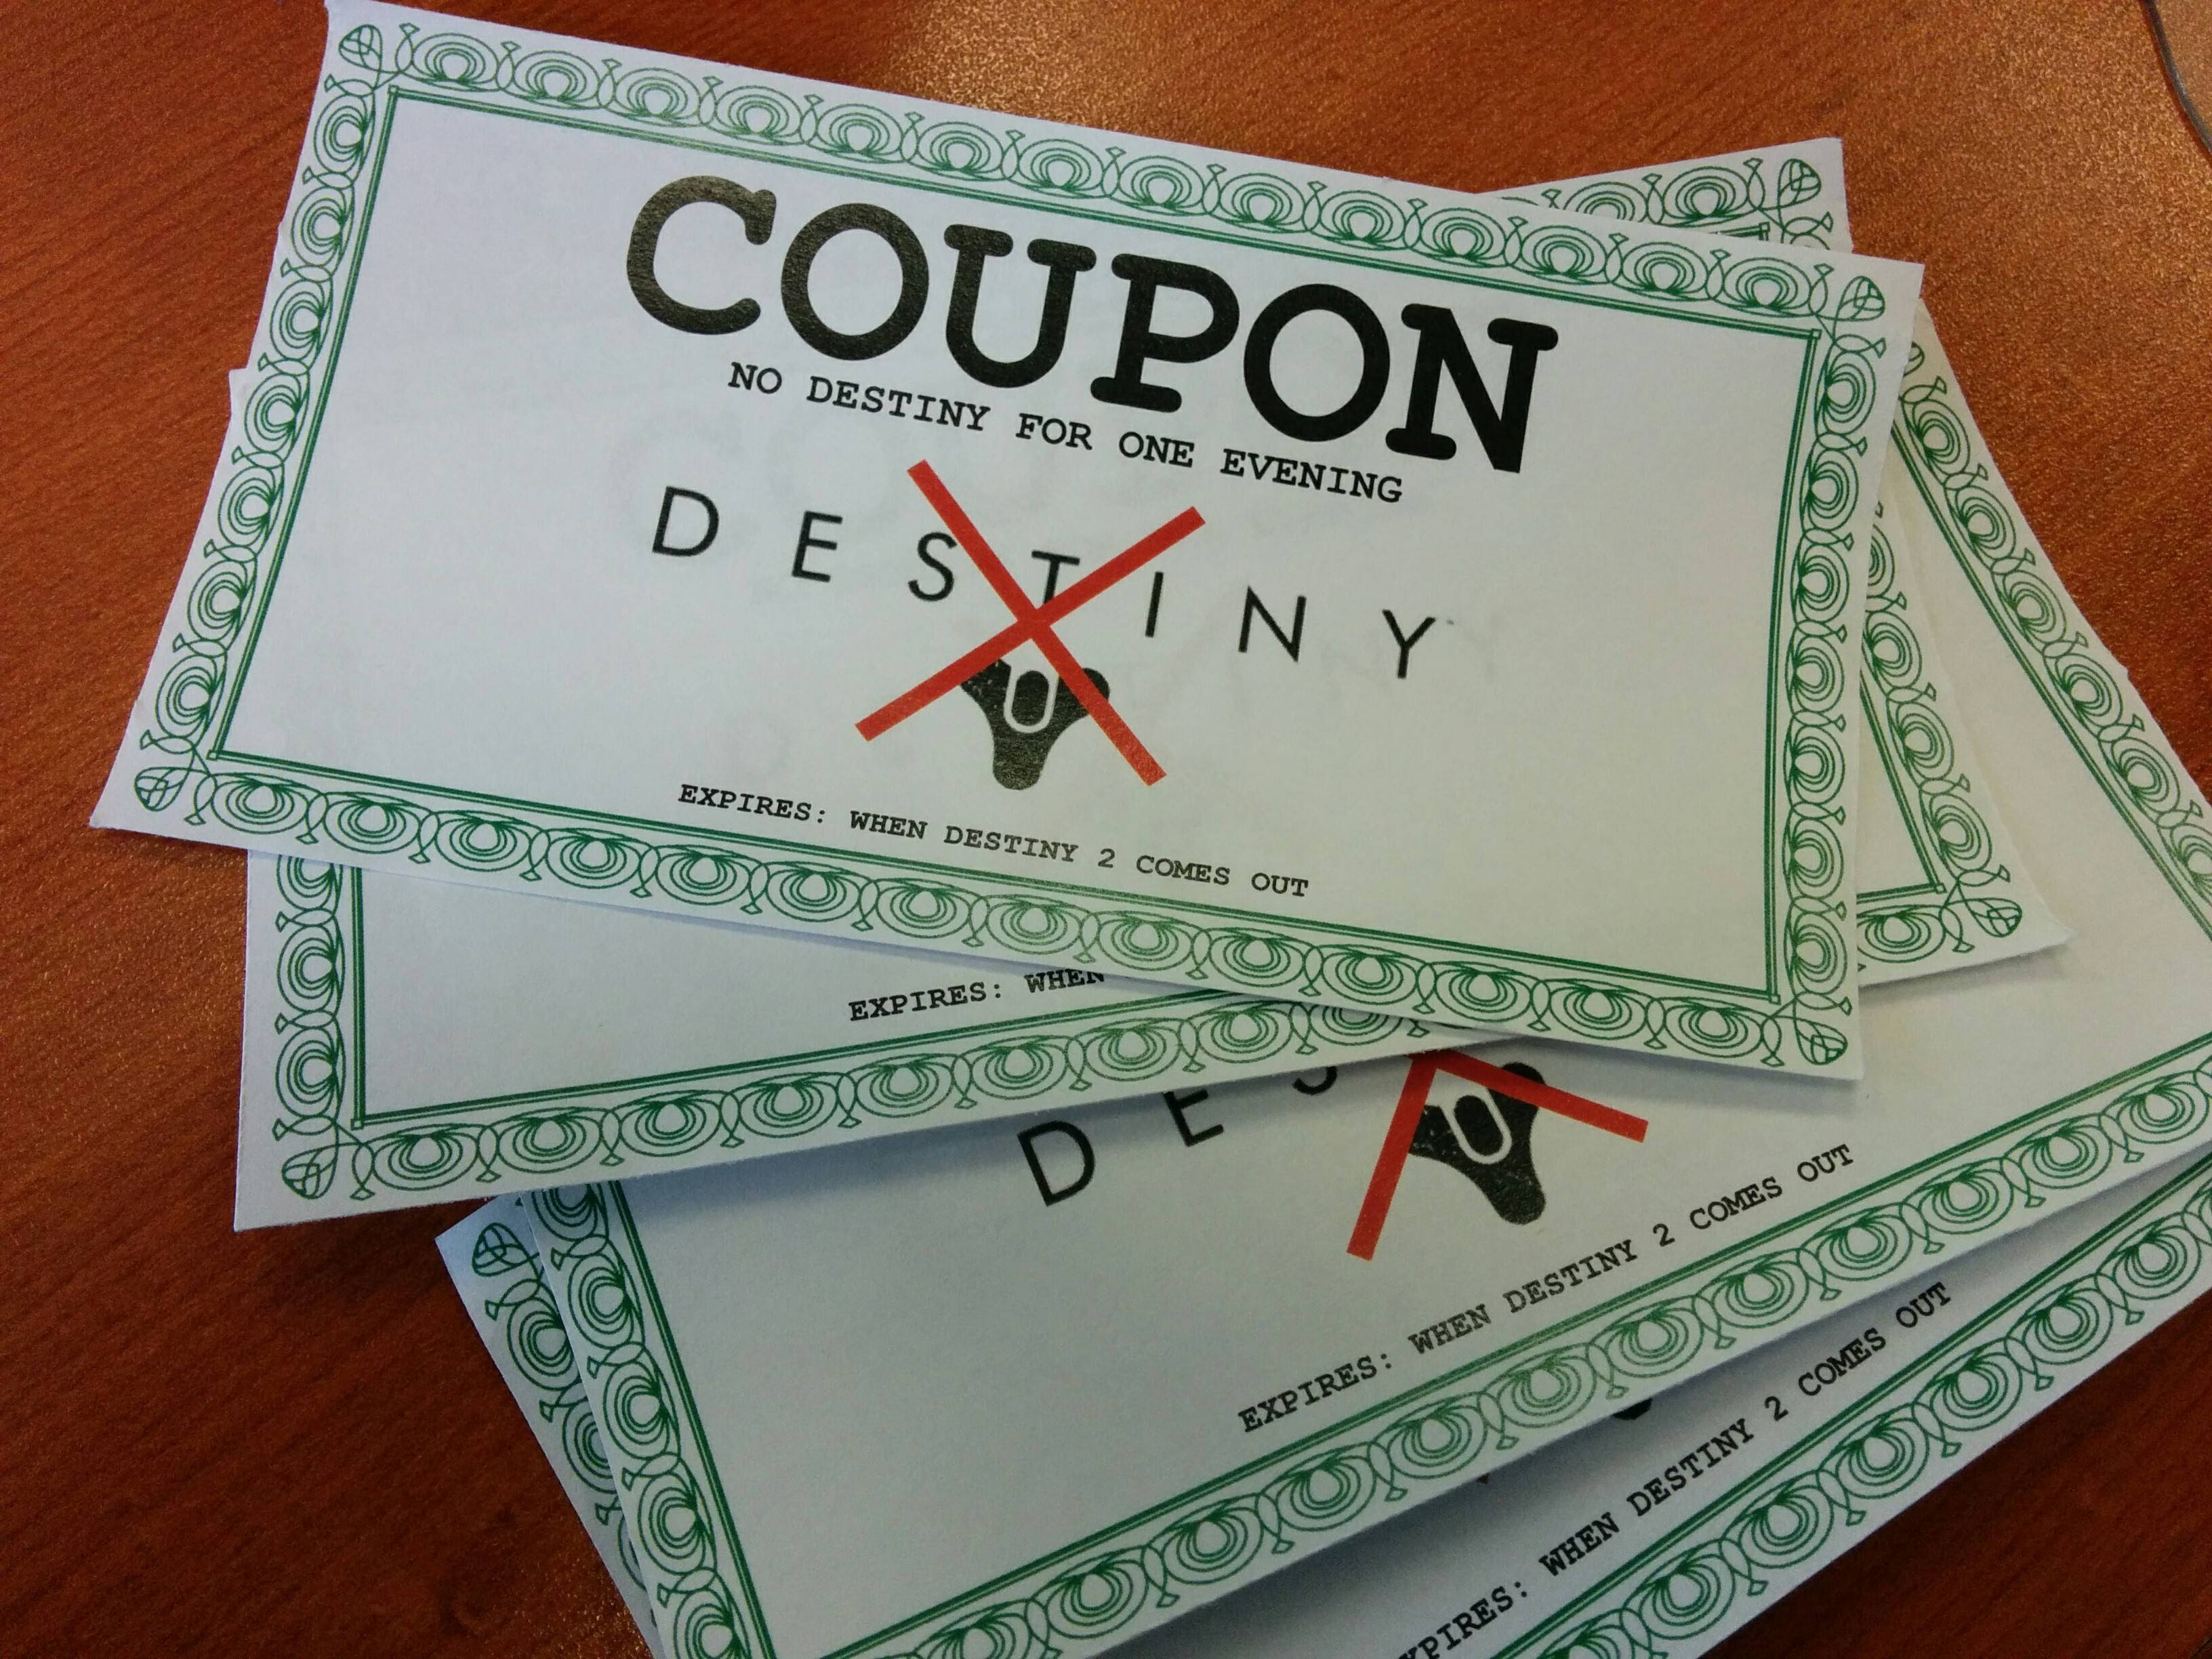 Destiny Coupons For The Wife For Christmas Or Birthdays